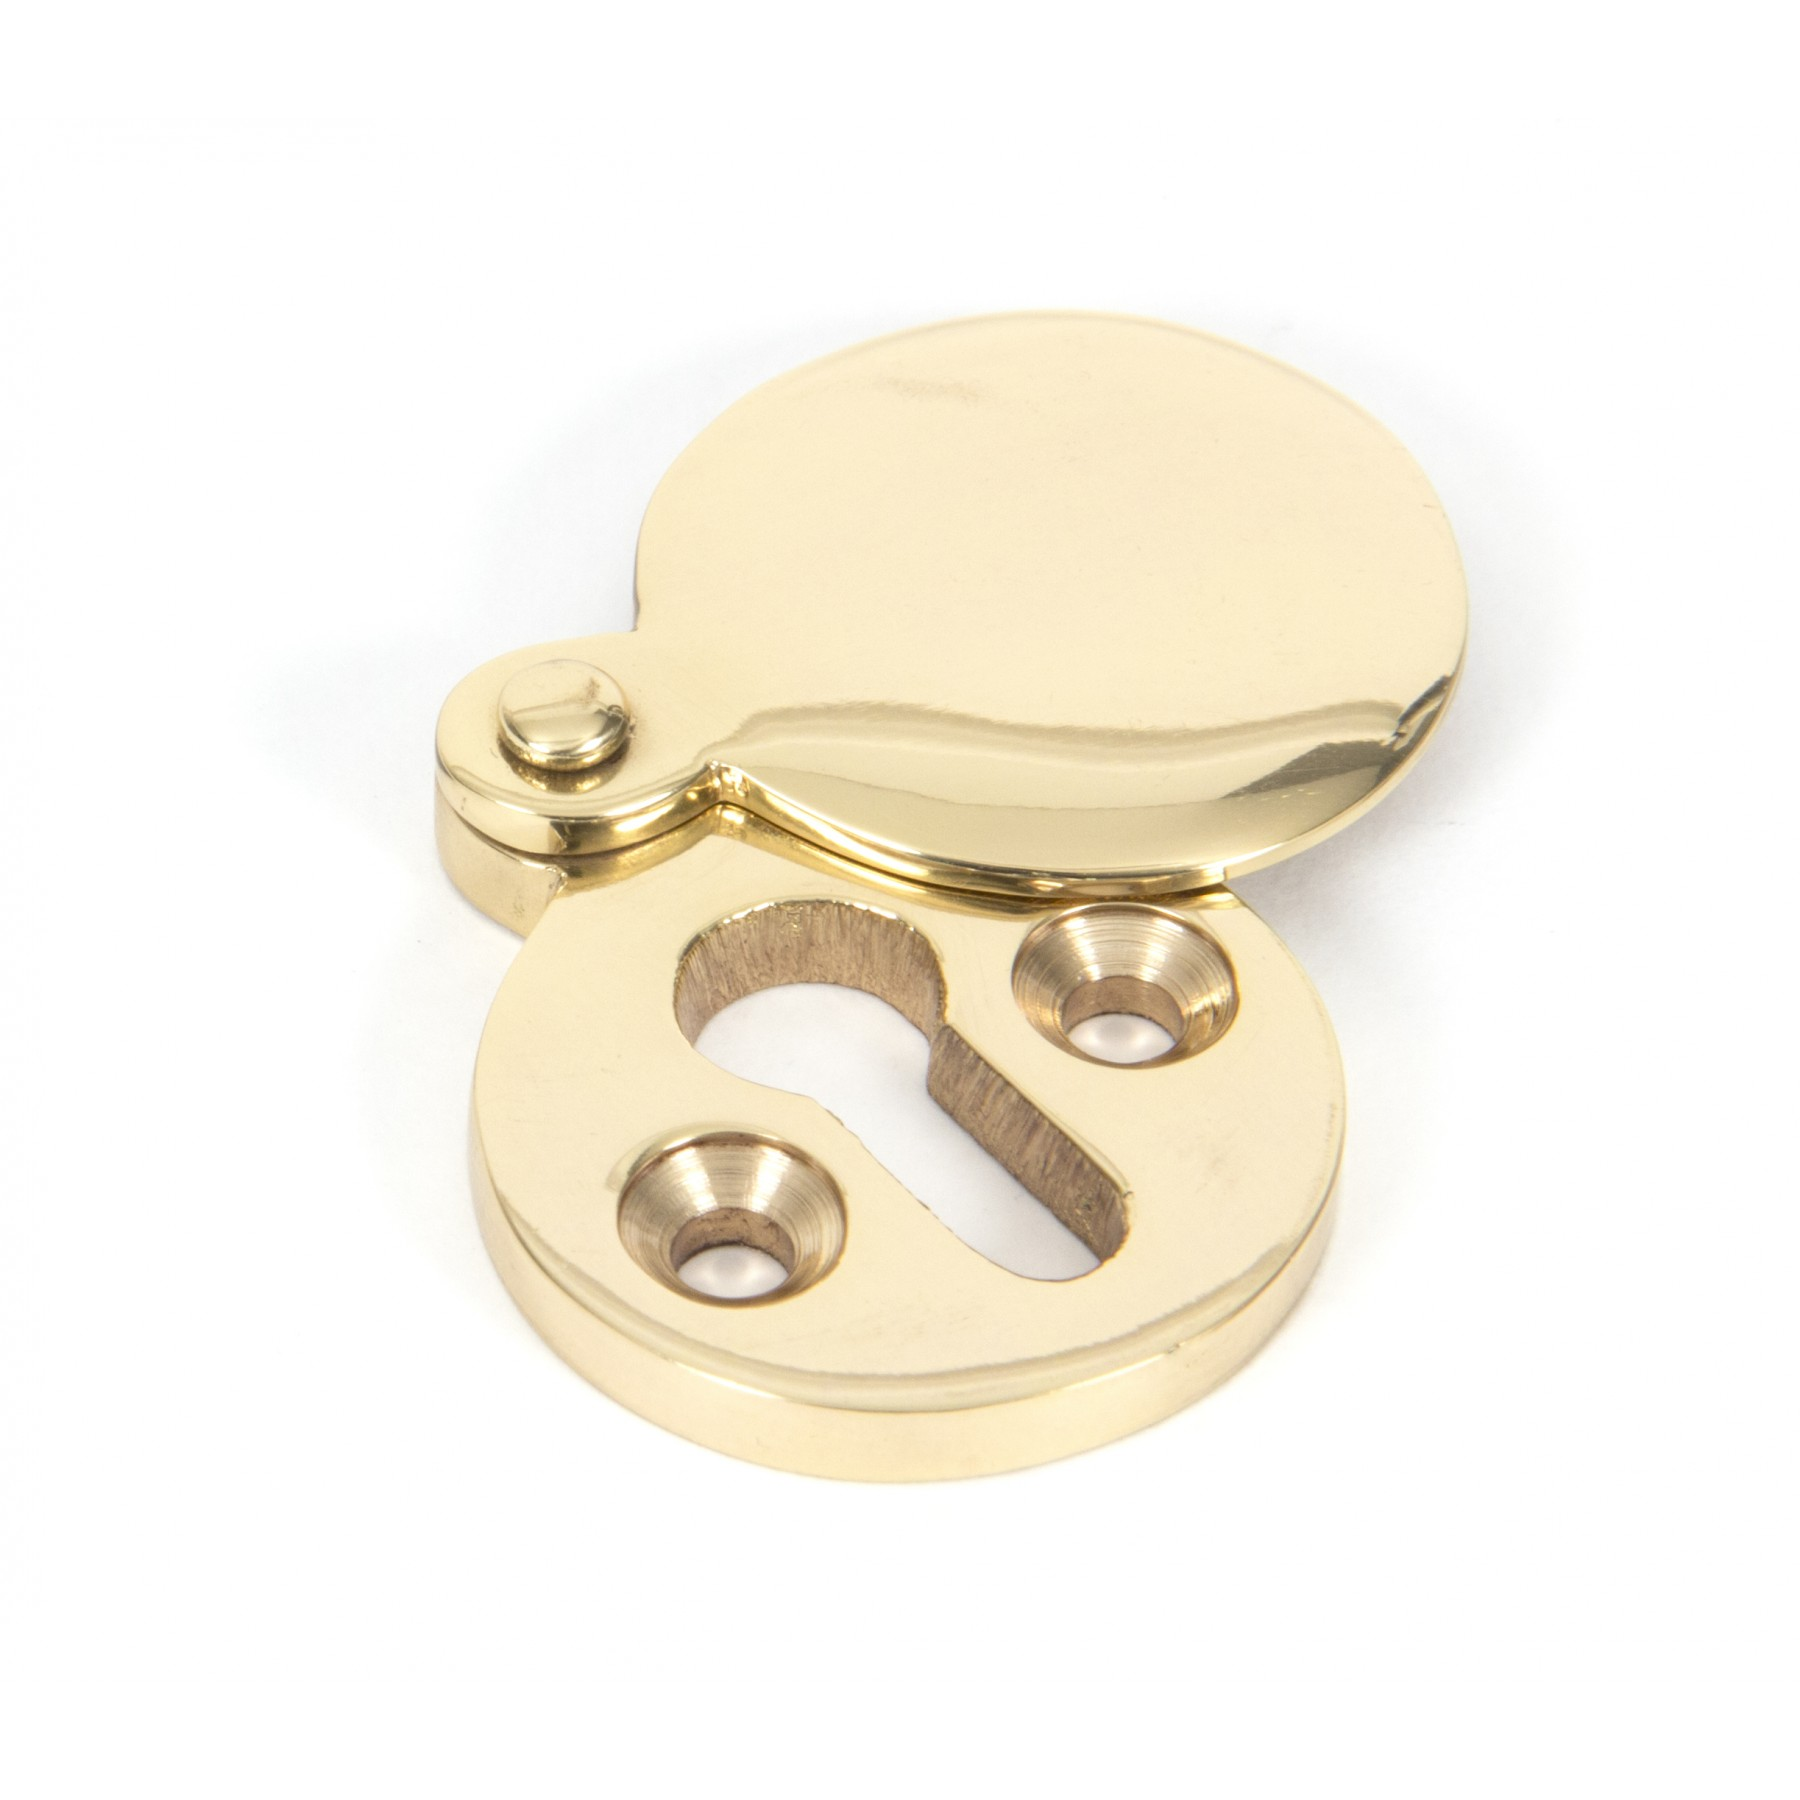 Polished Brass Round Escutcheon From The Anvil Period